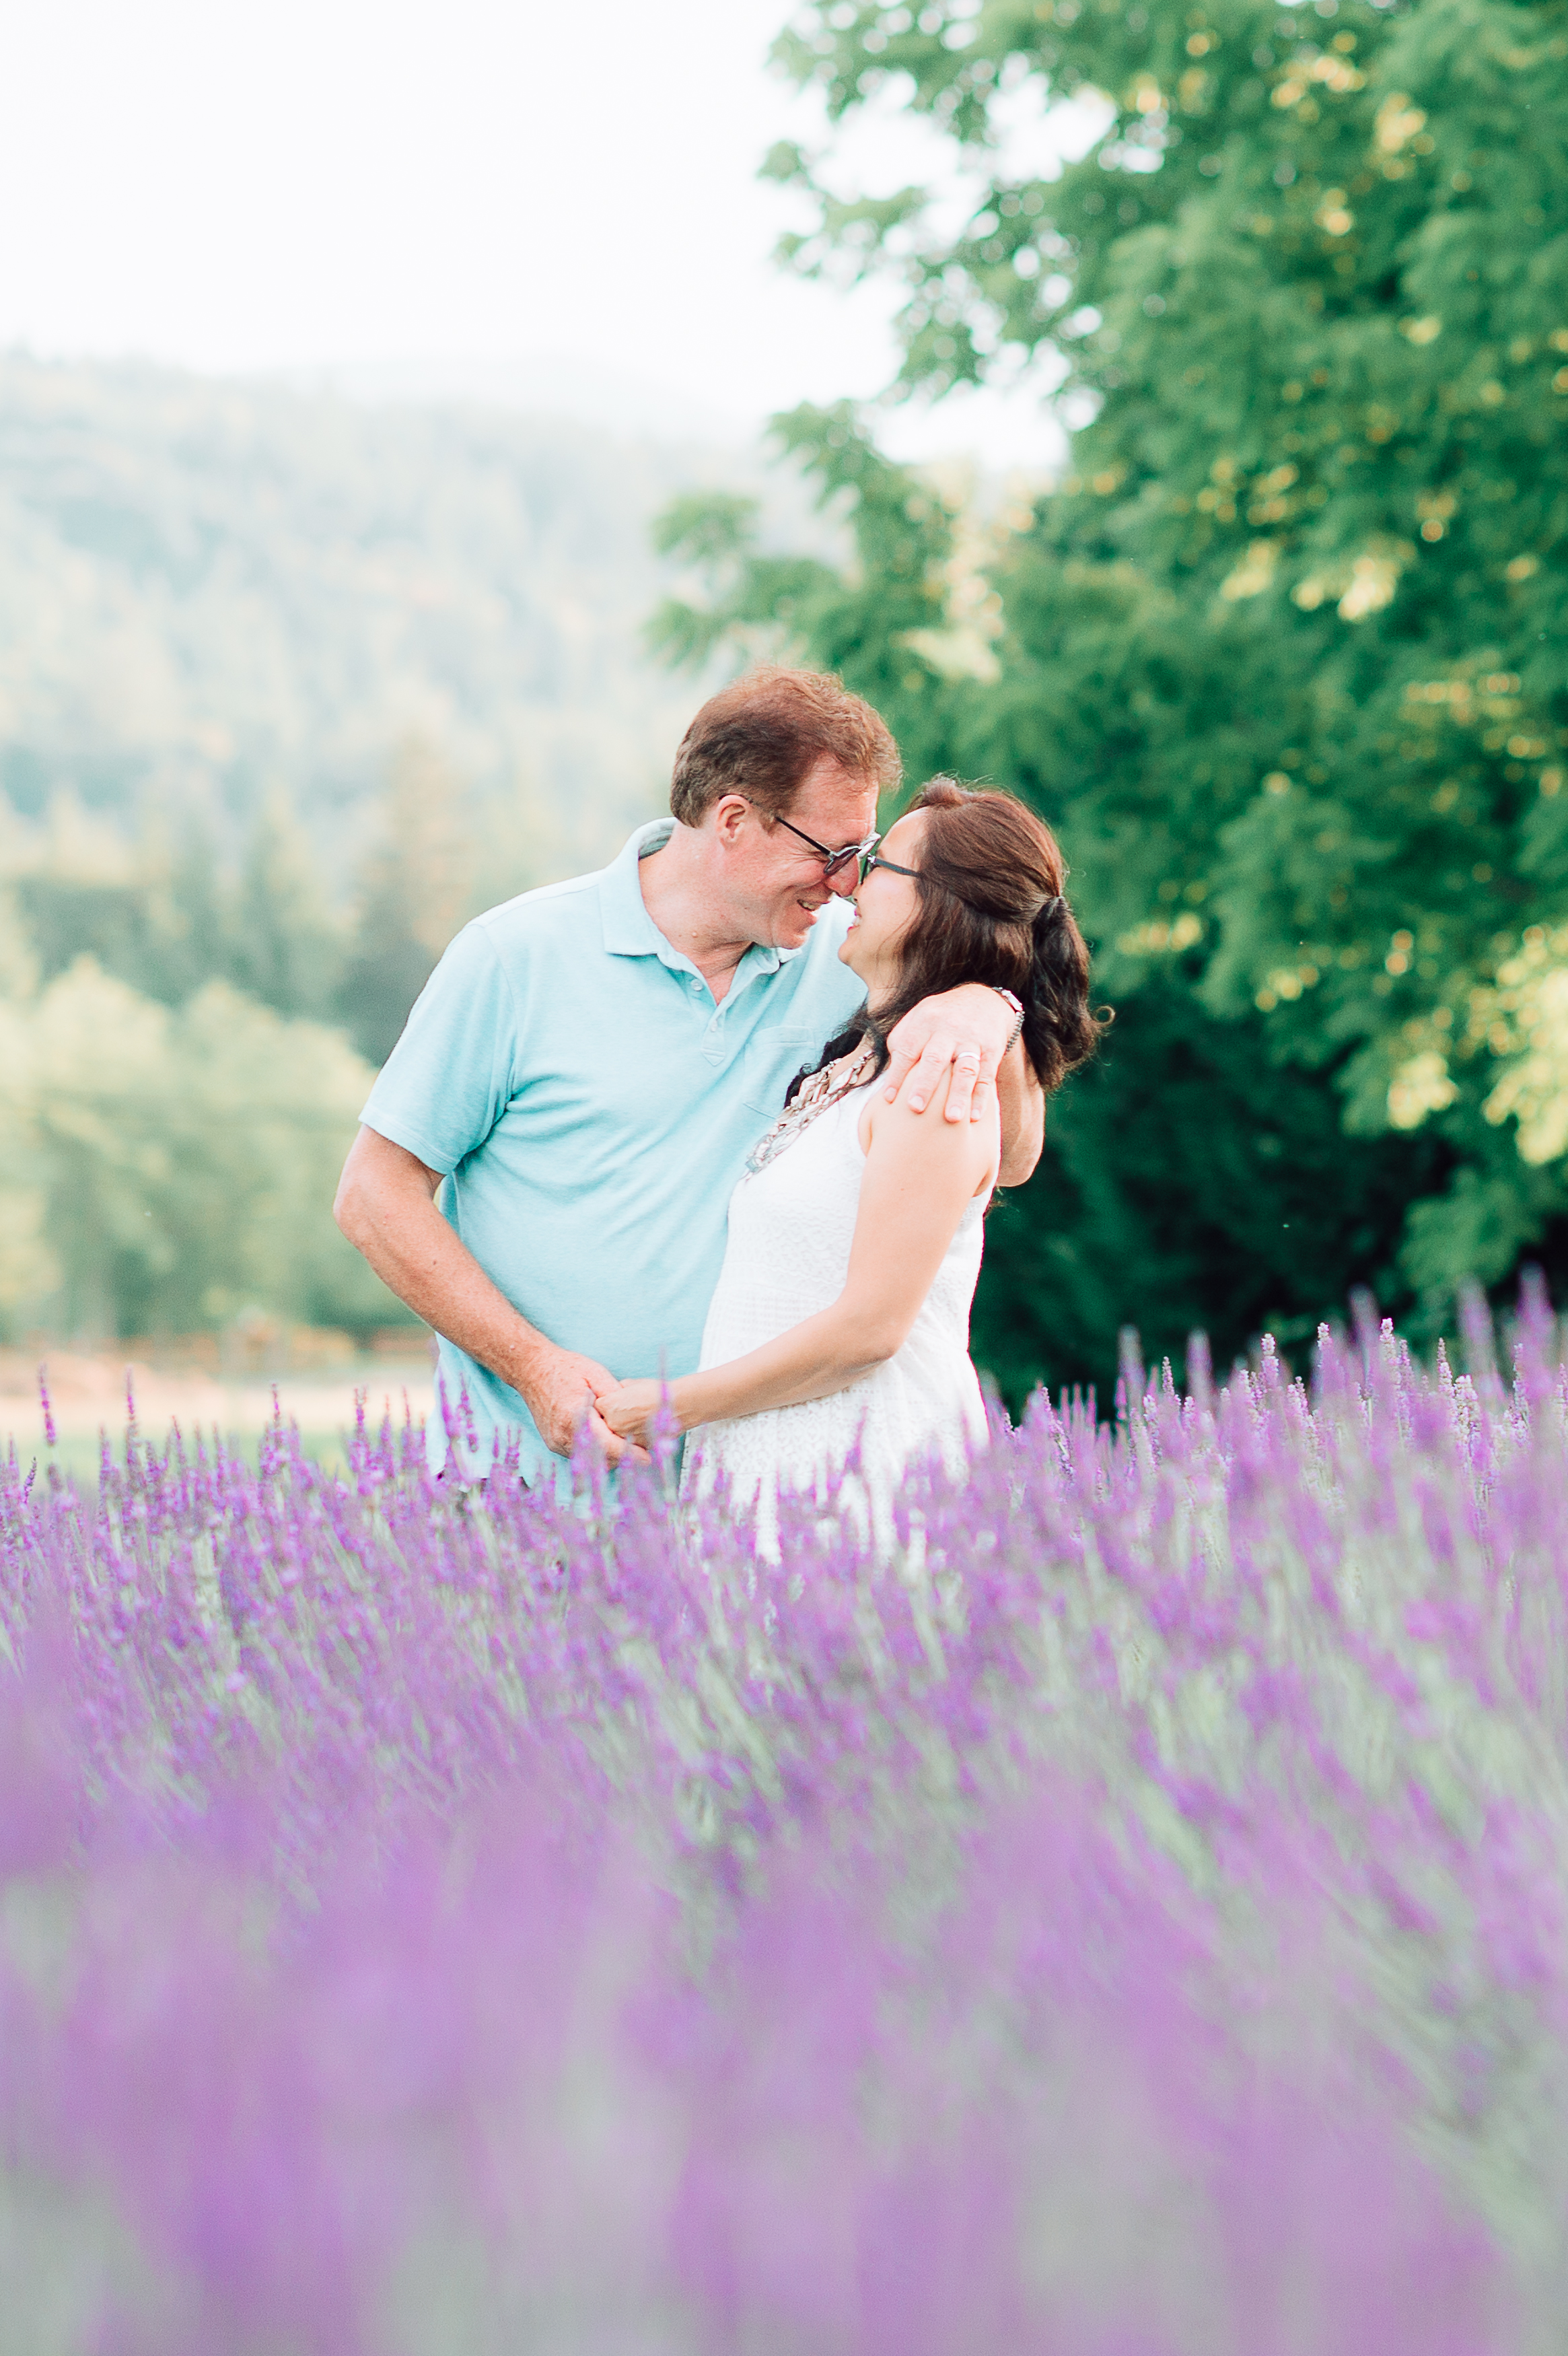 engagement_lavenderfield_youseephotography_LidiaOtto (10).jpg